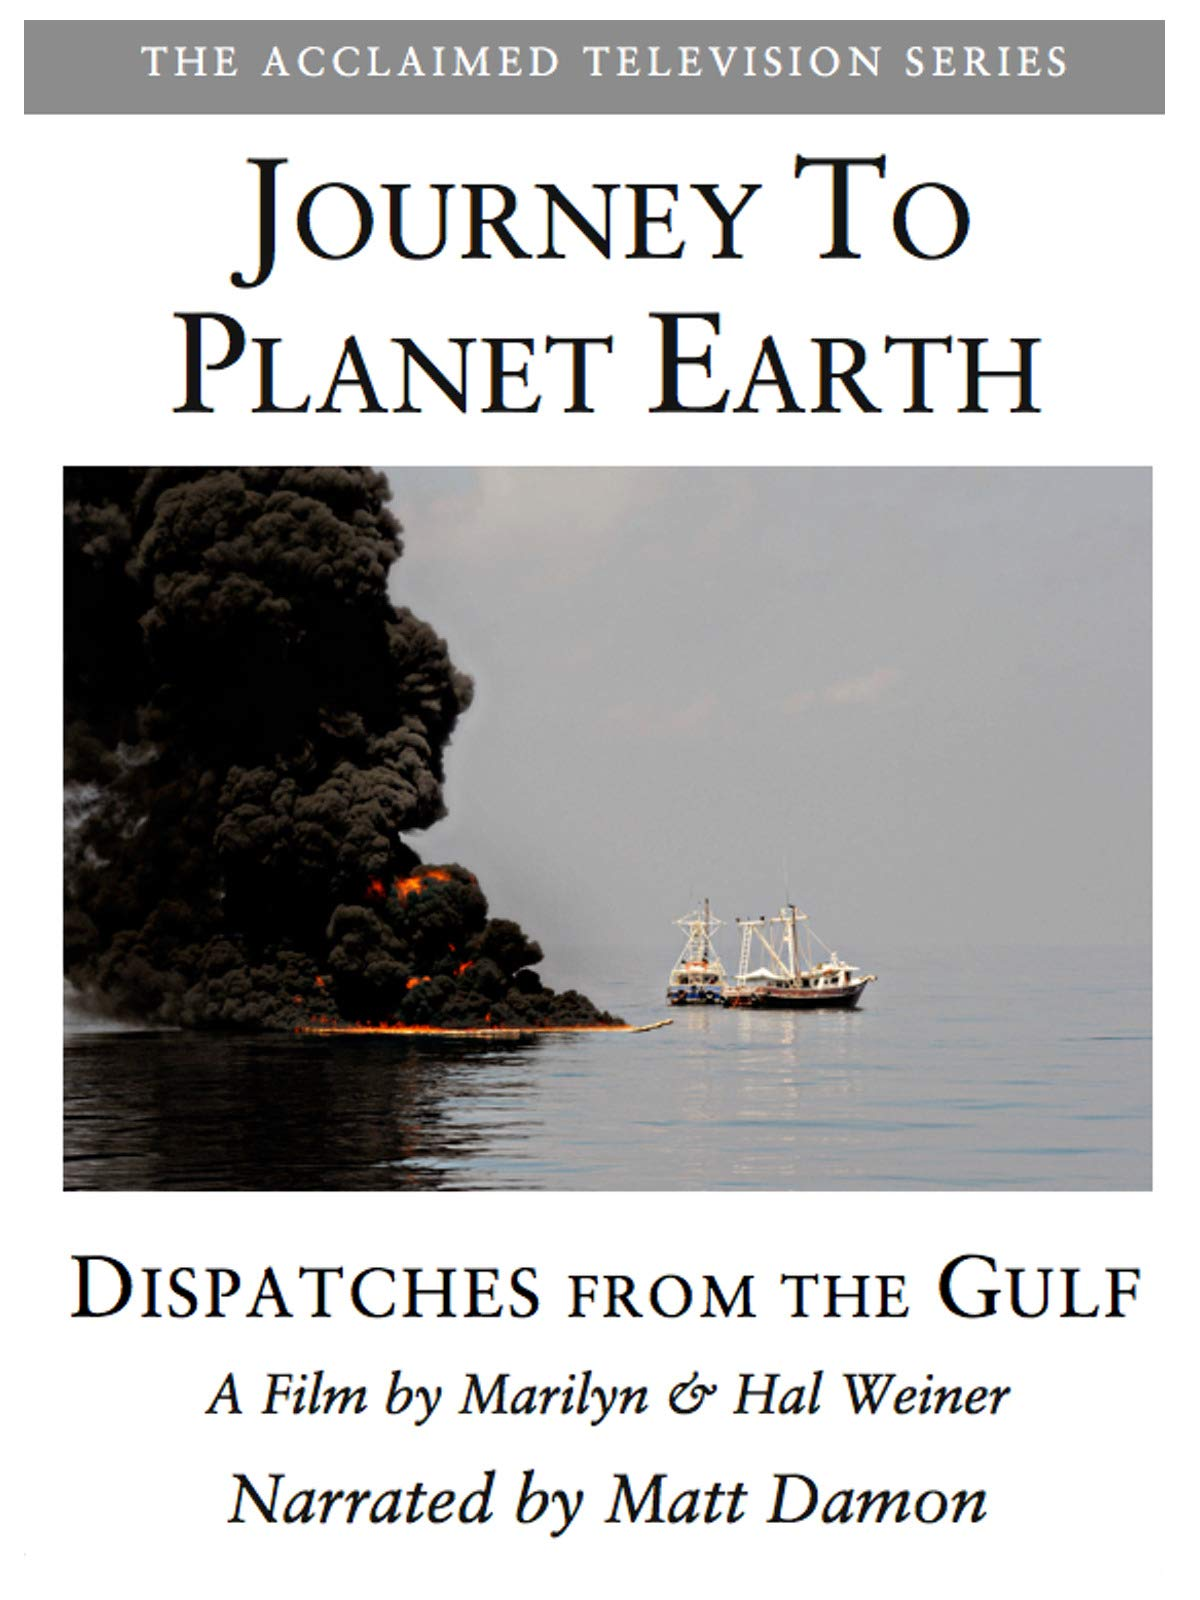 Journey to Planet Earth: Dispatches from the Gulf 1 on Amazon Prime Video UK